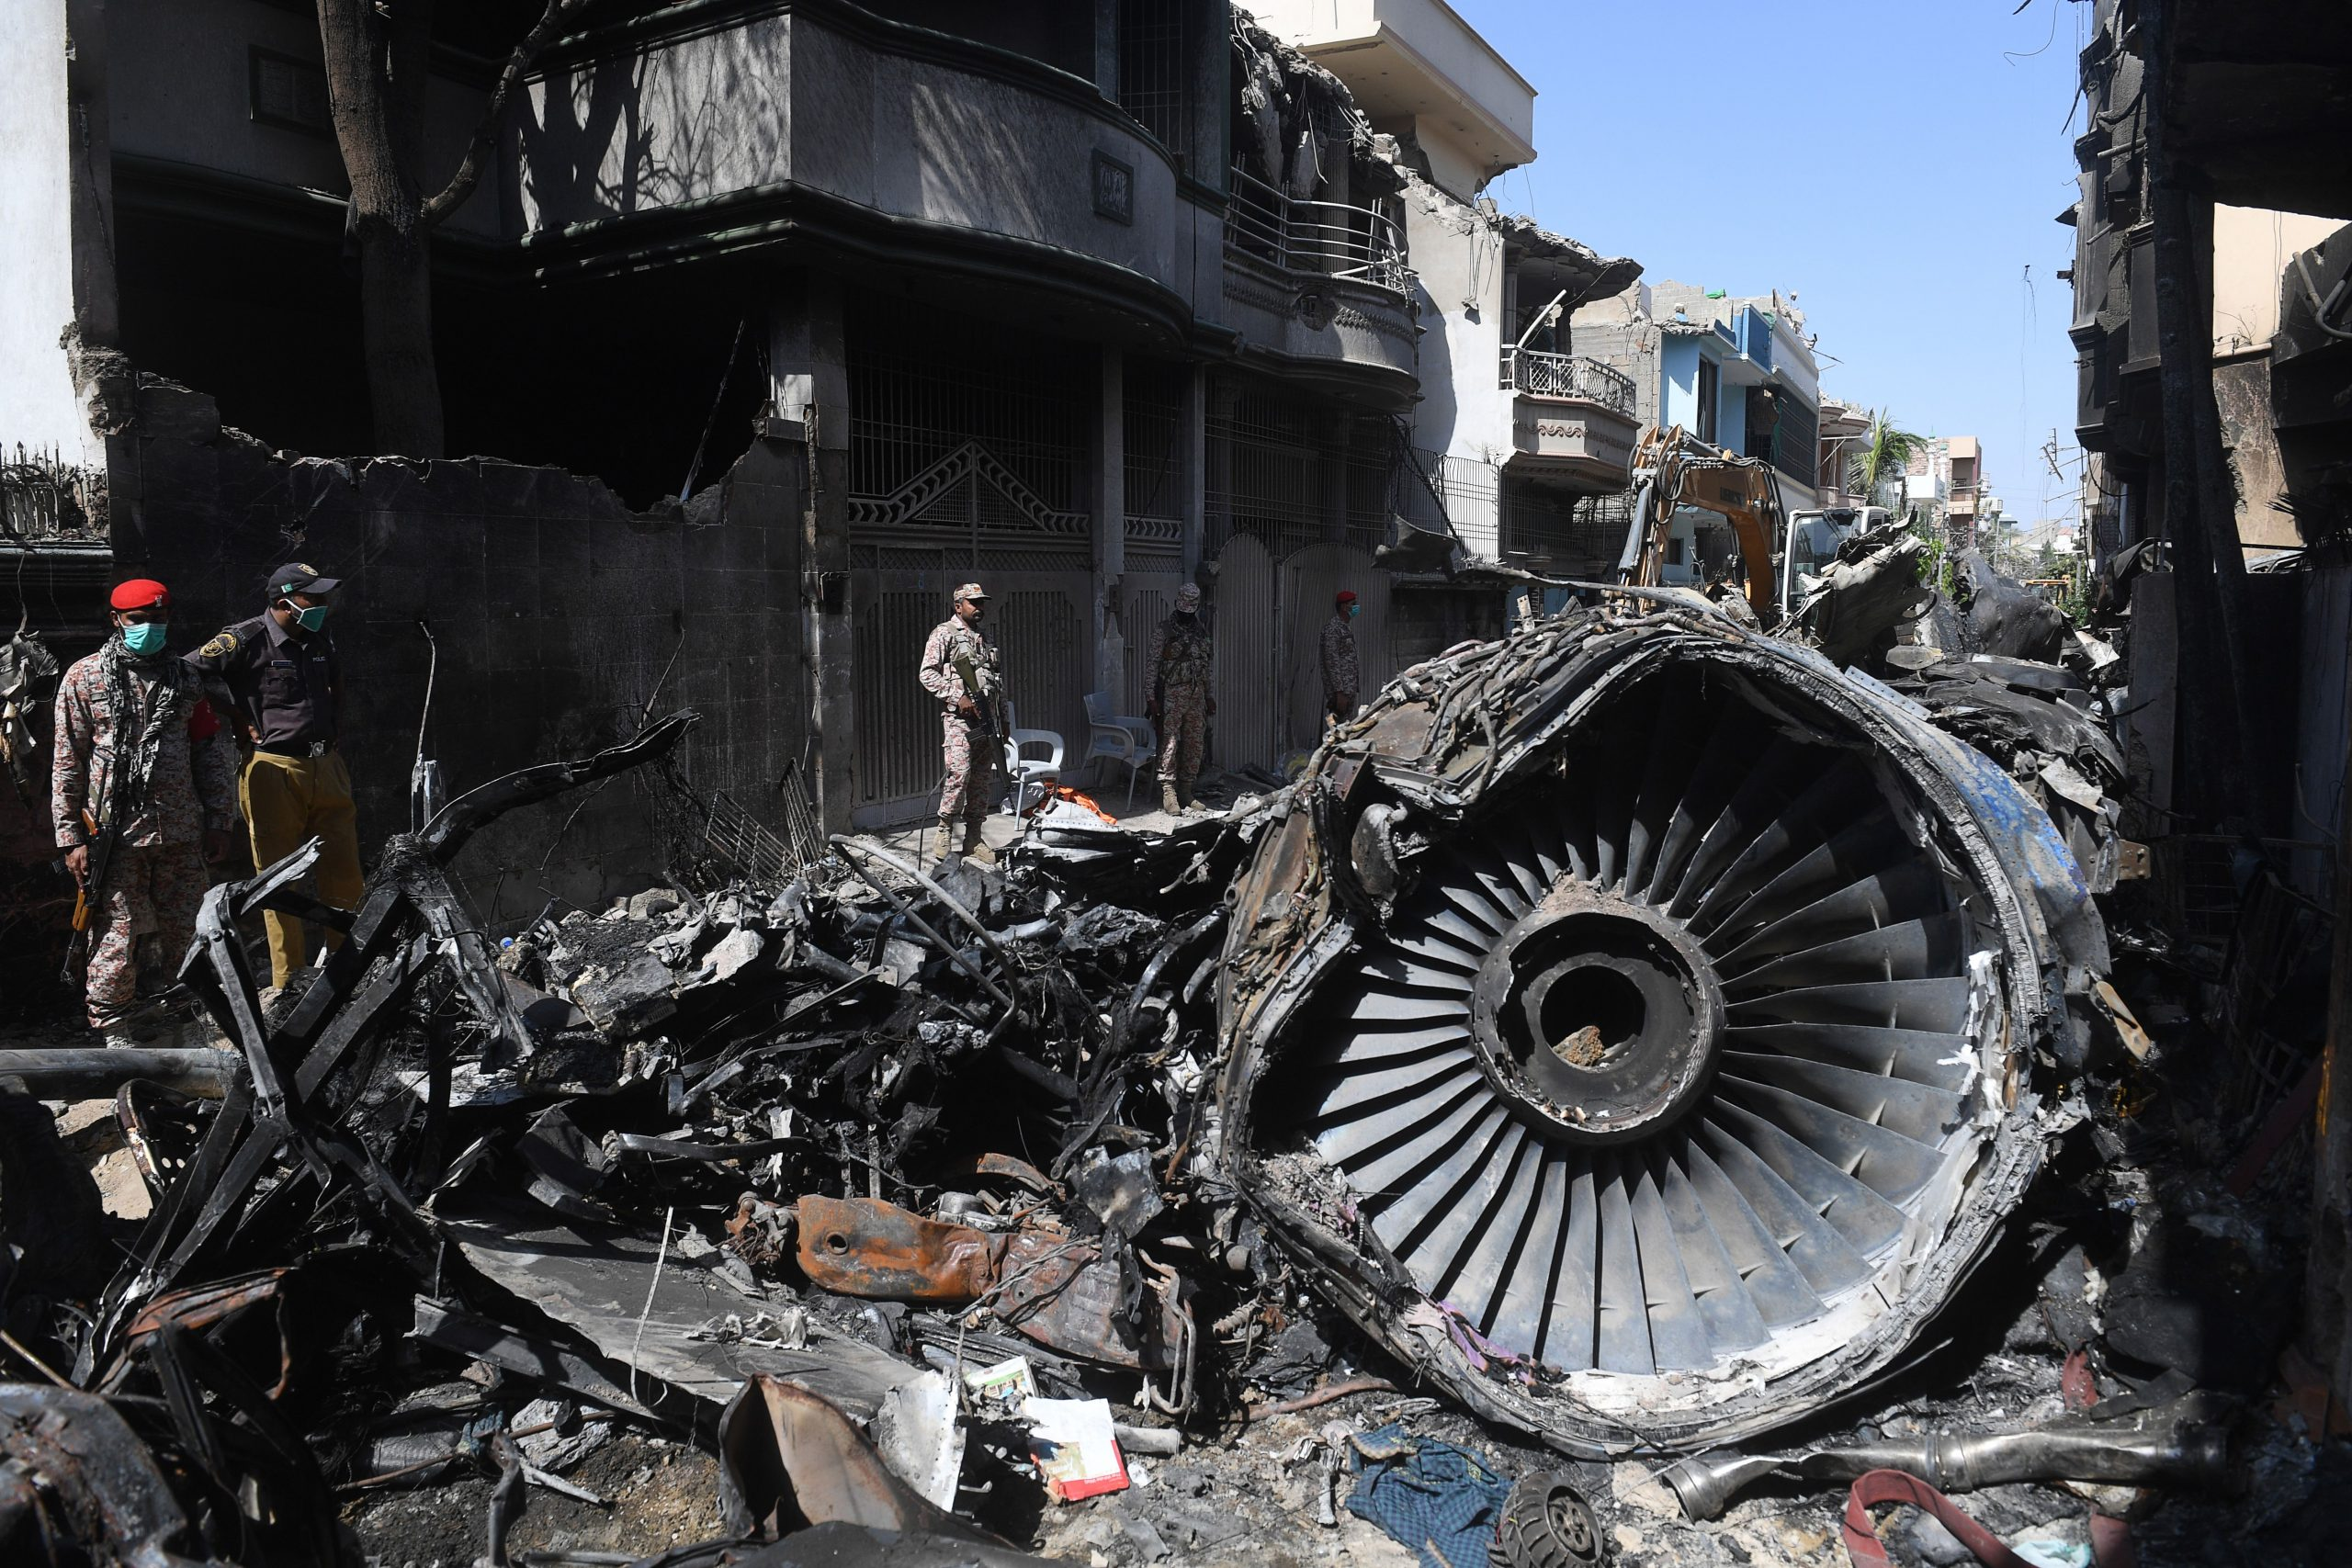 FILE PHOTO: Security personnel stand beside the wreckage of a plane at the site after a Pakistan International Airlines aircraft crashed in a residential area days before, in Karachi on May 24, 2020. (Photo by ASIF HASSAN/AFP via Getty Images)